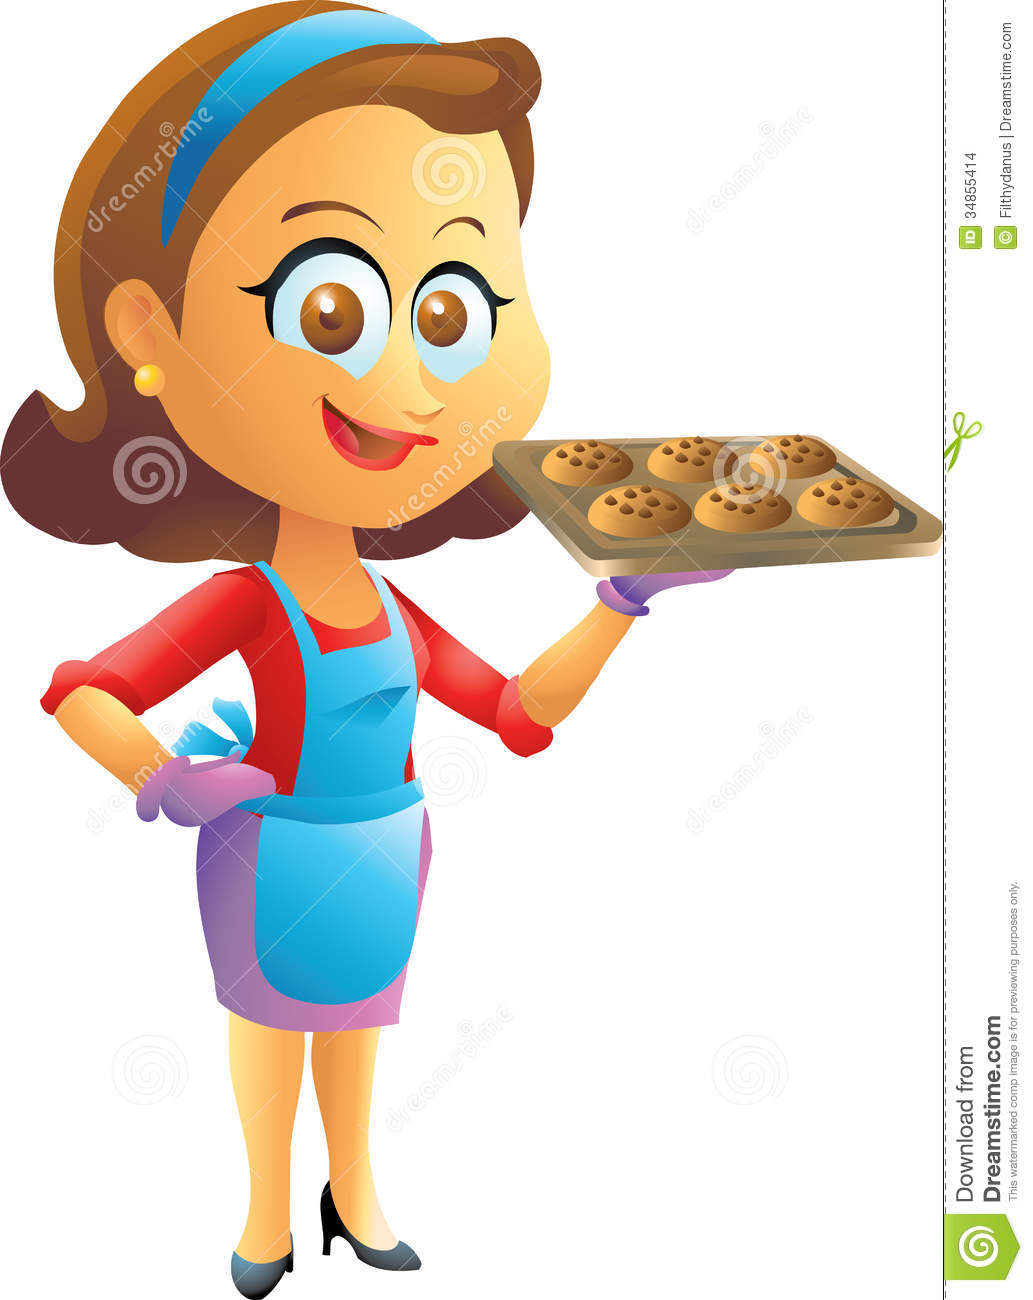 Stock Images Cooking Housewife Smiling Isolated Illustration Image34855414 on Asian House Plans